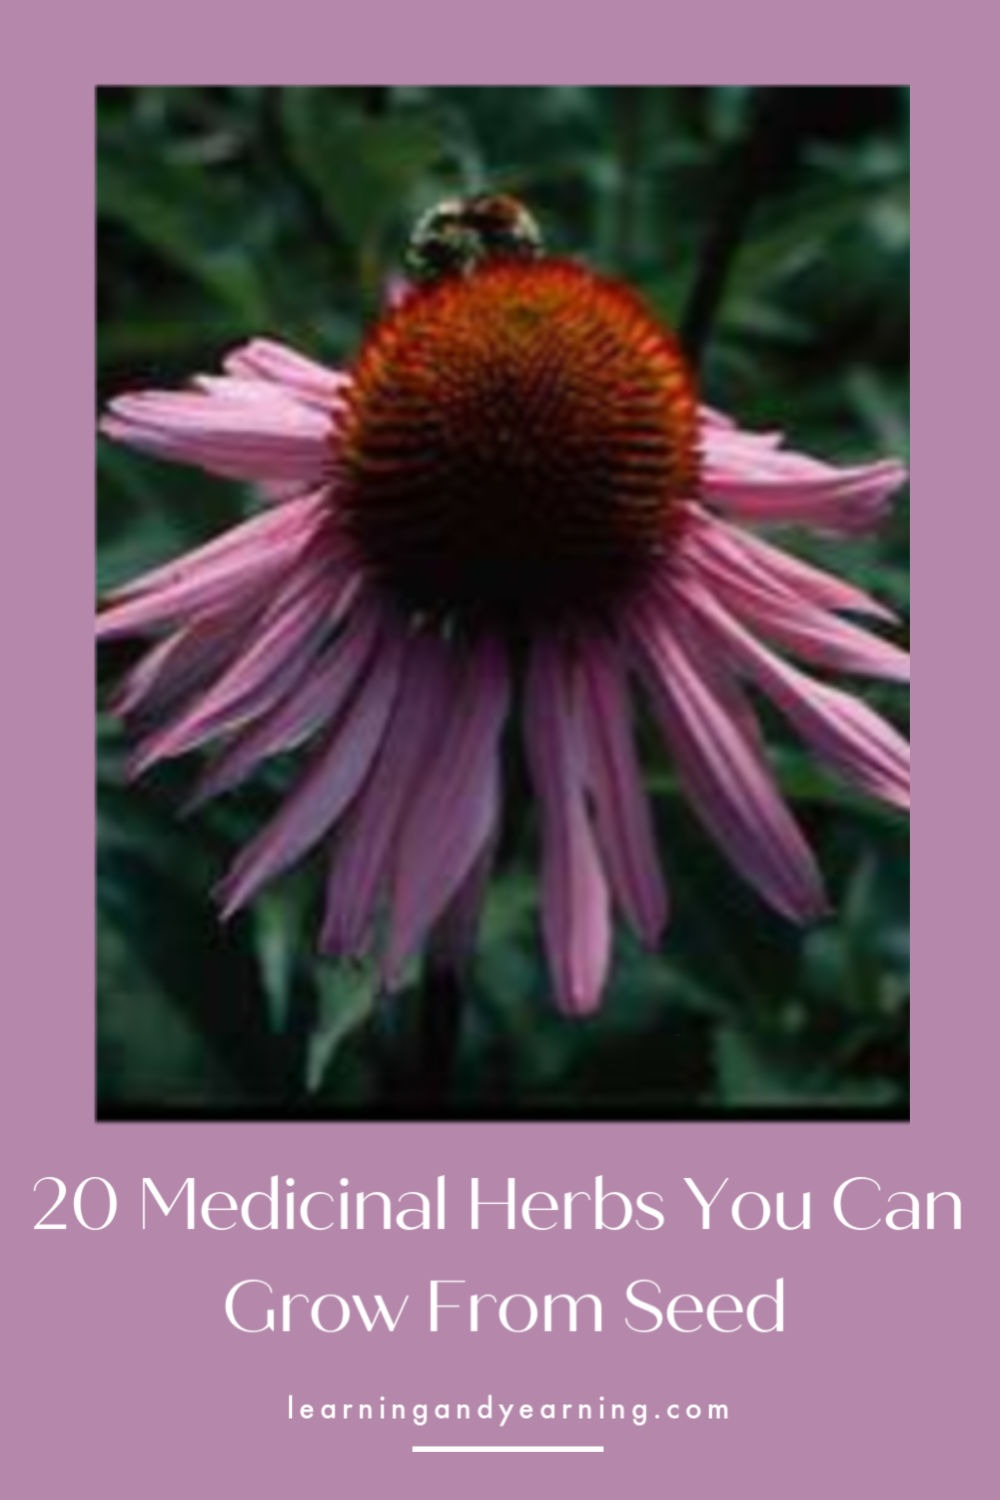 20 medicinal herbs you can grow from seed!